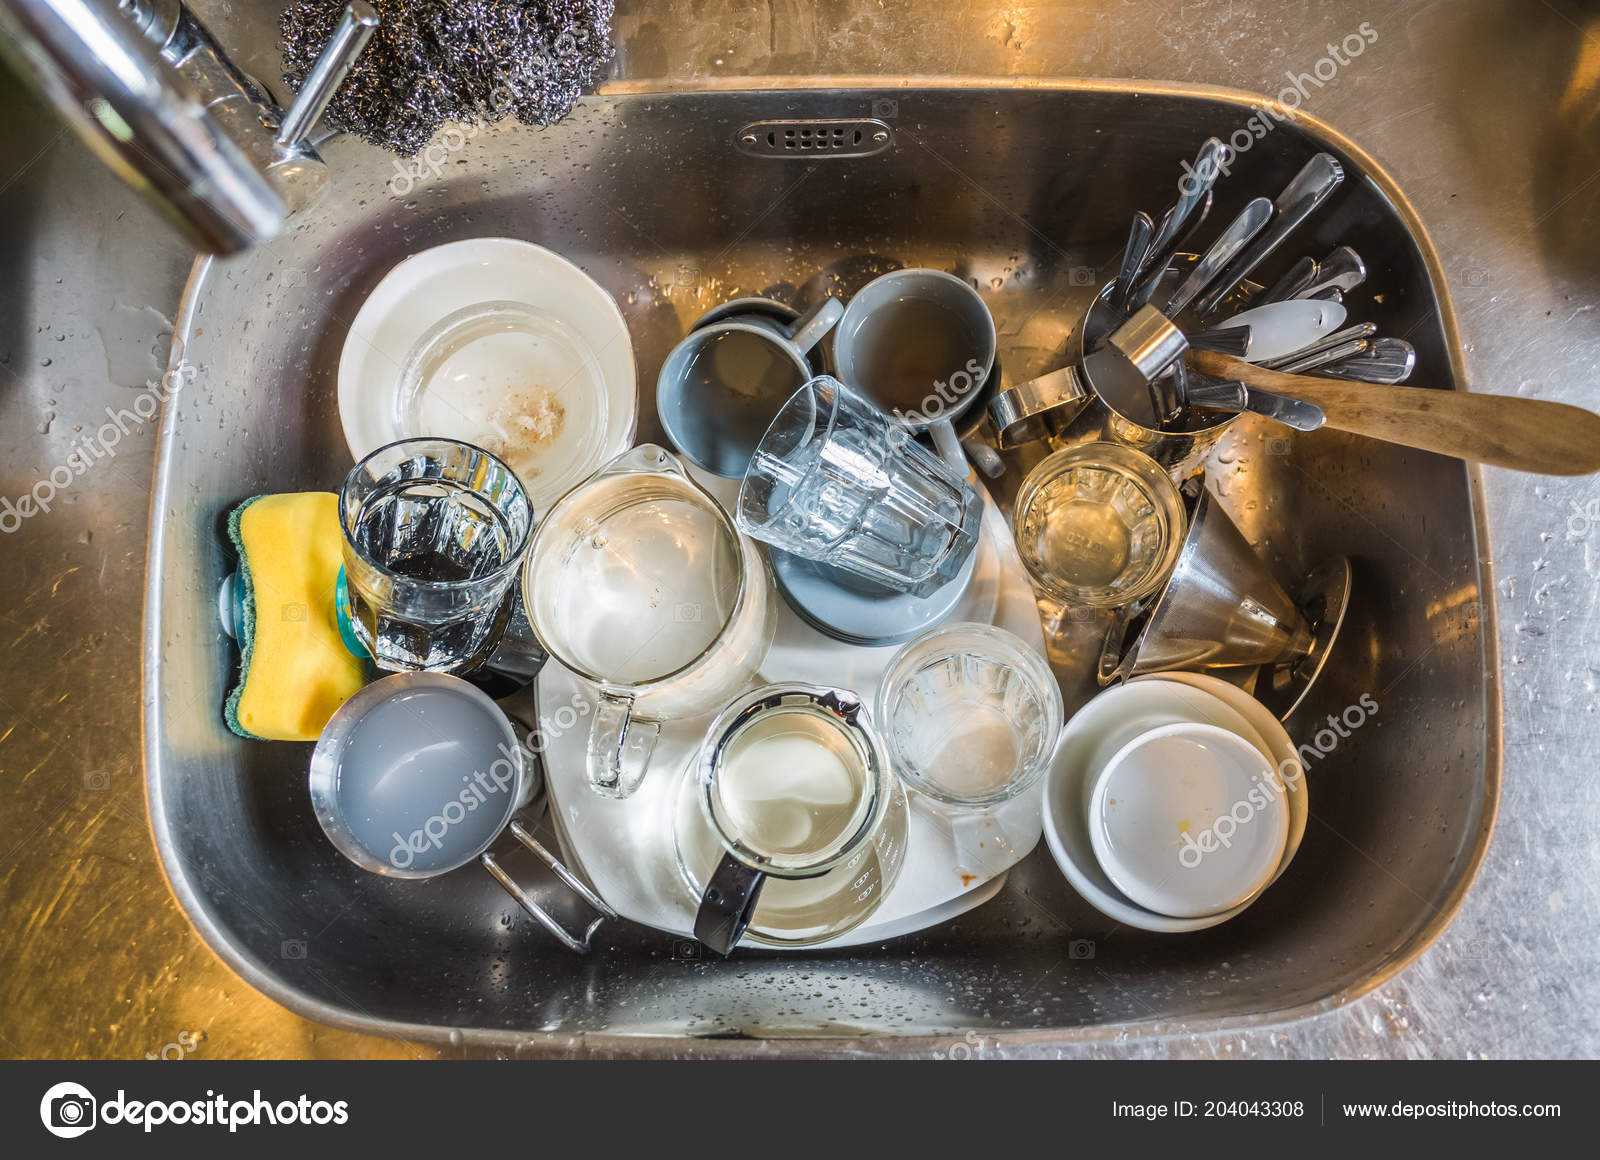 Dirty Dishes Kitchen Sink Home — Stock Photo © elwynn #204043308